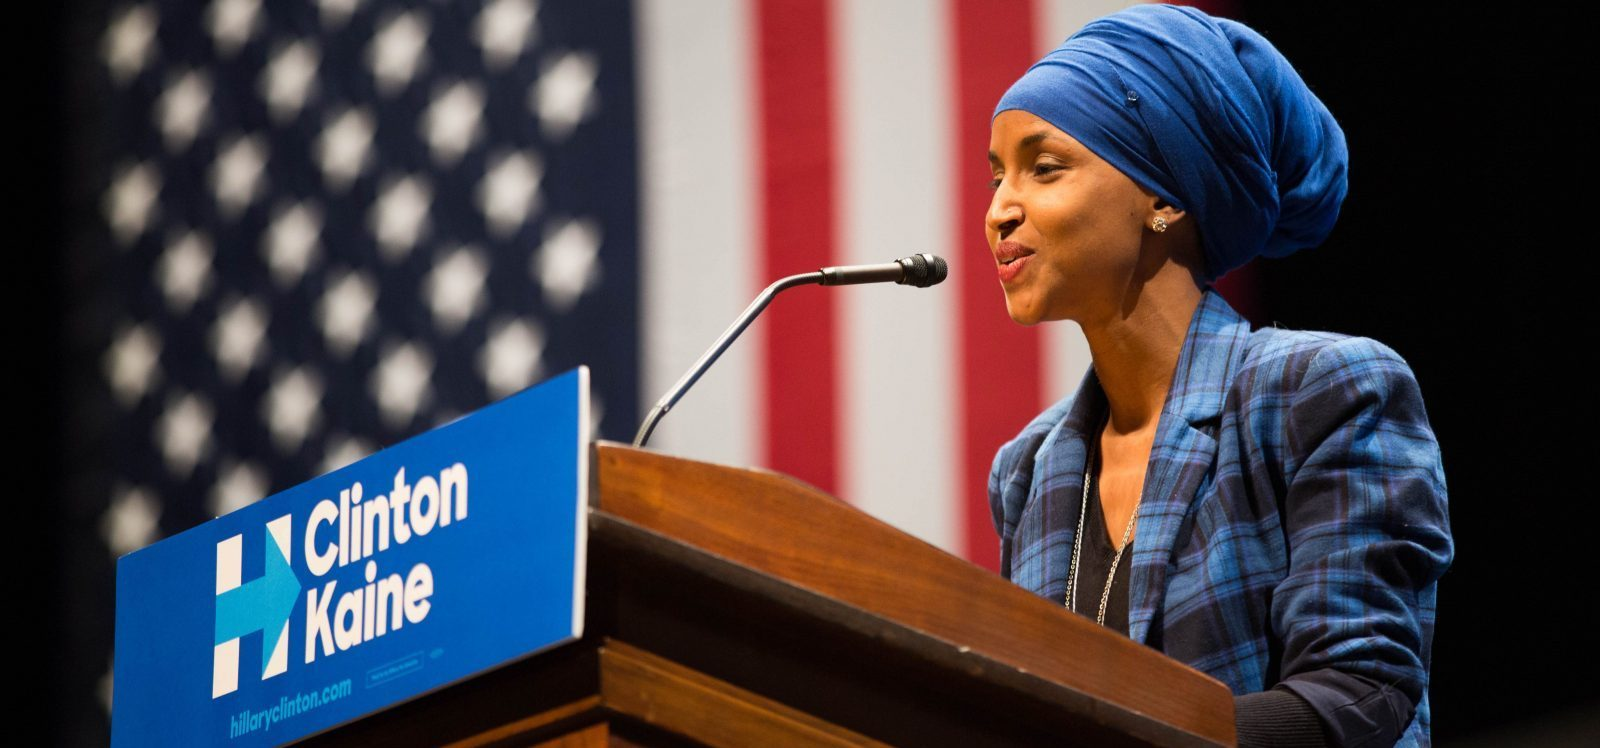 Ilhan Omar campaigns for Clinton & Kaine